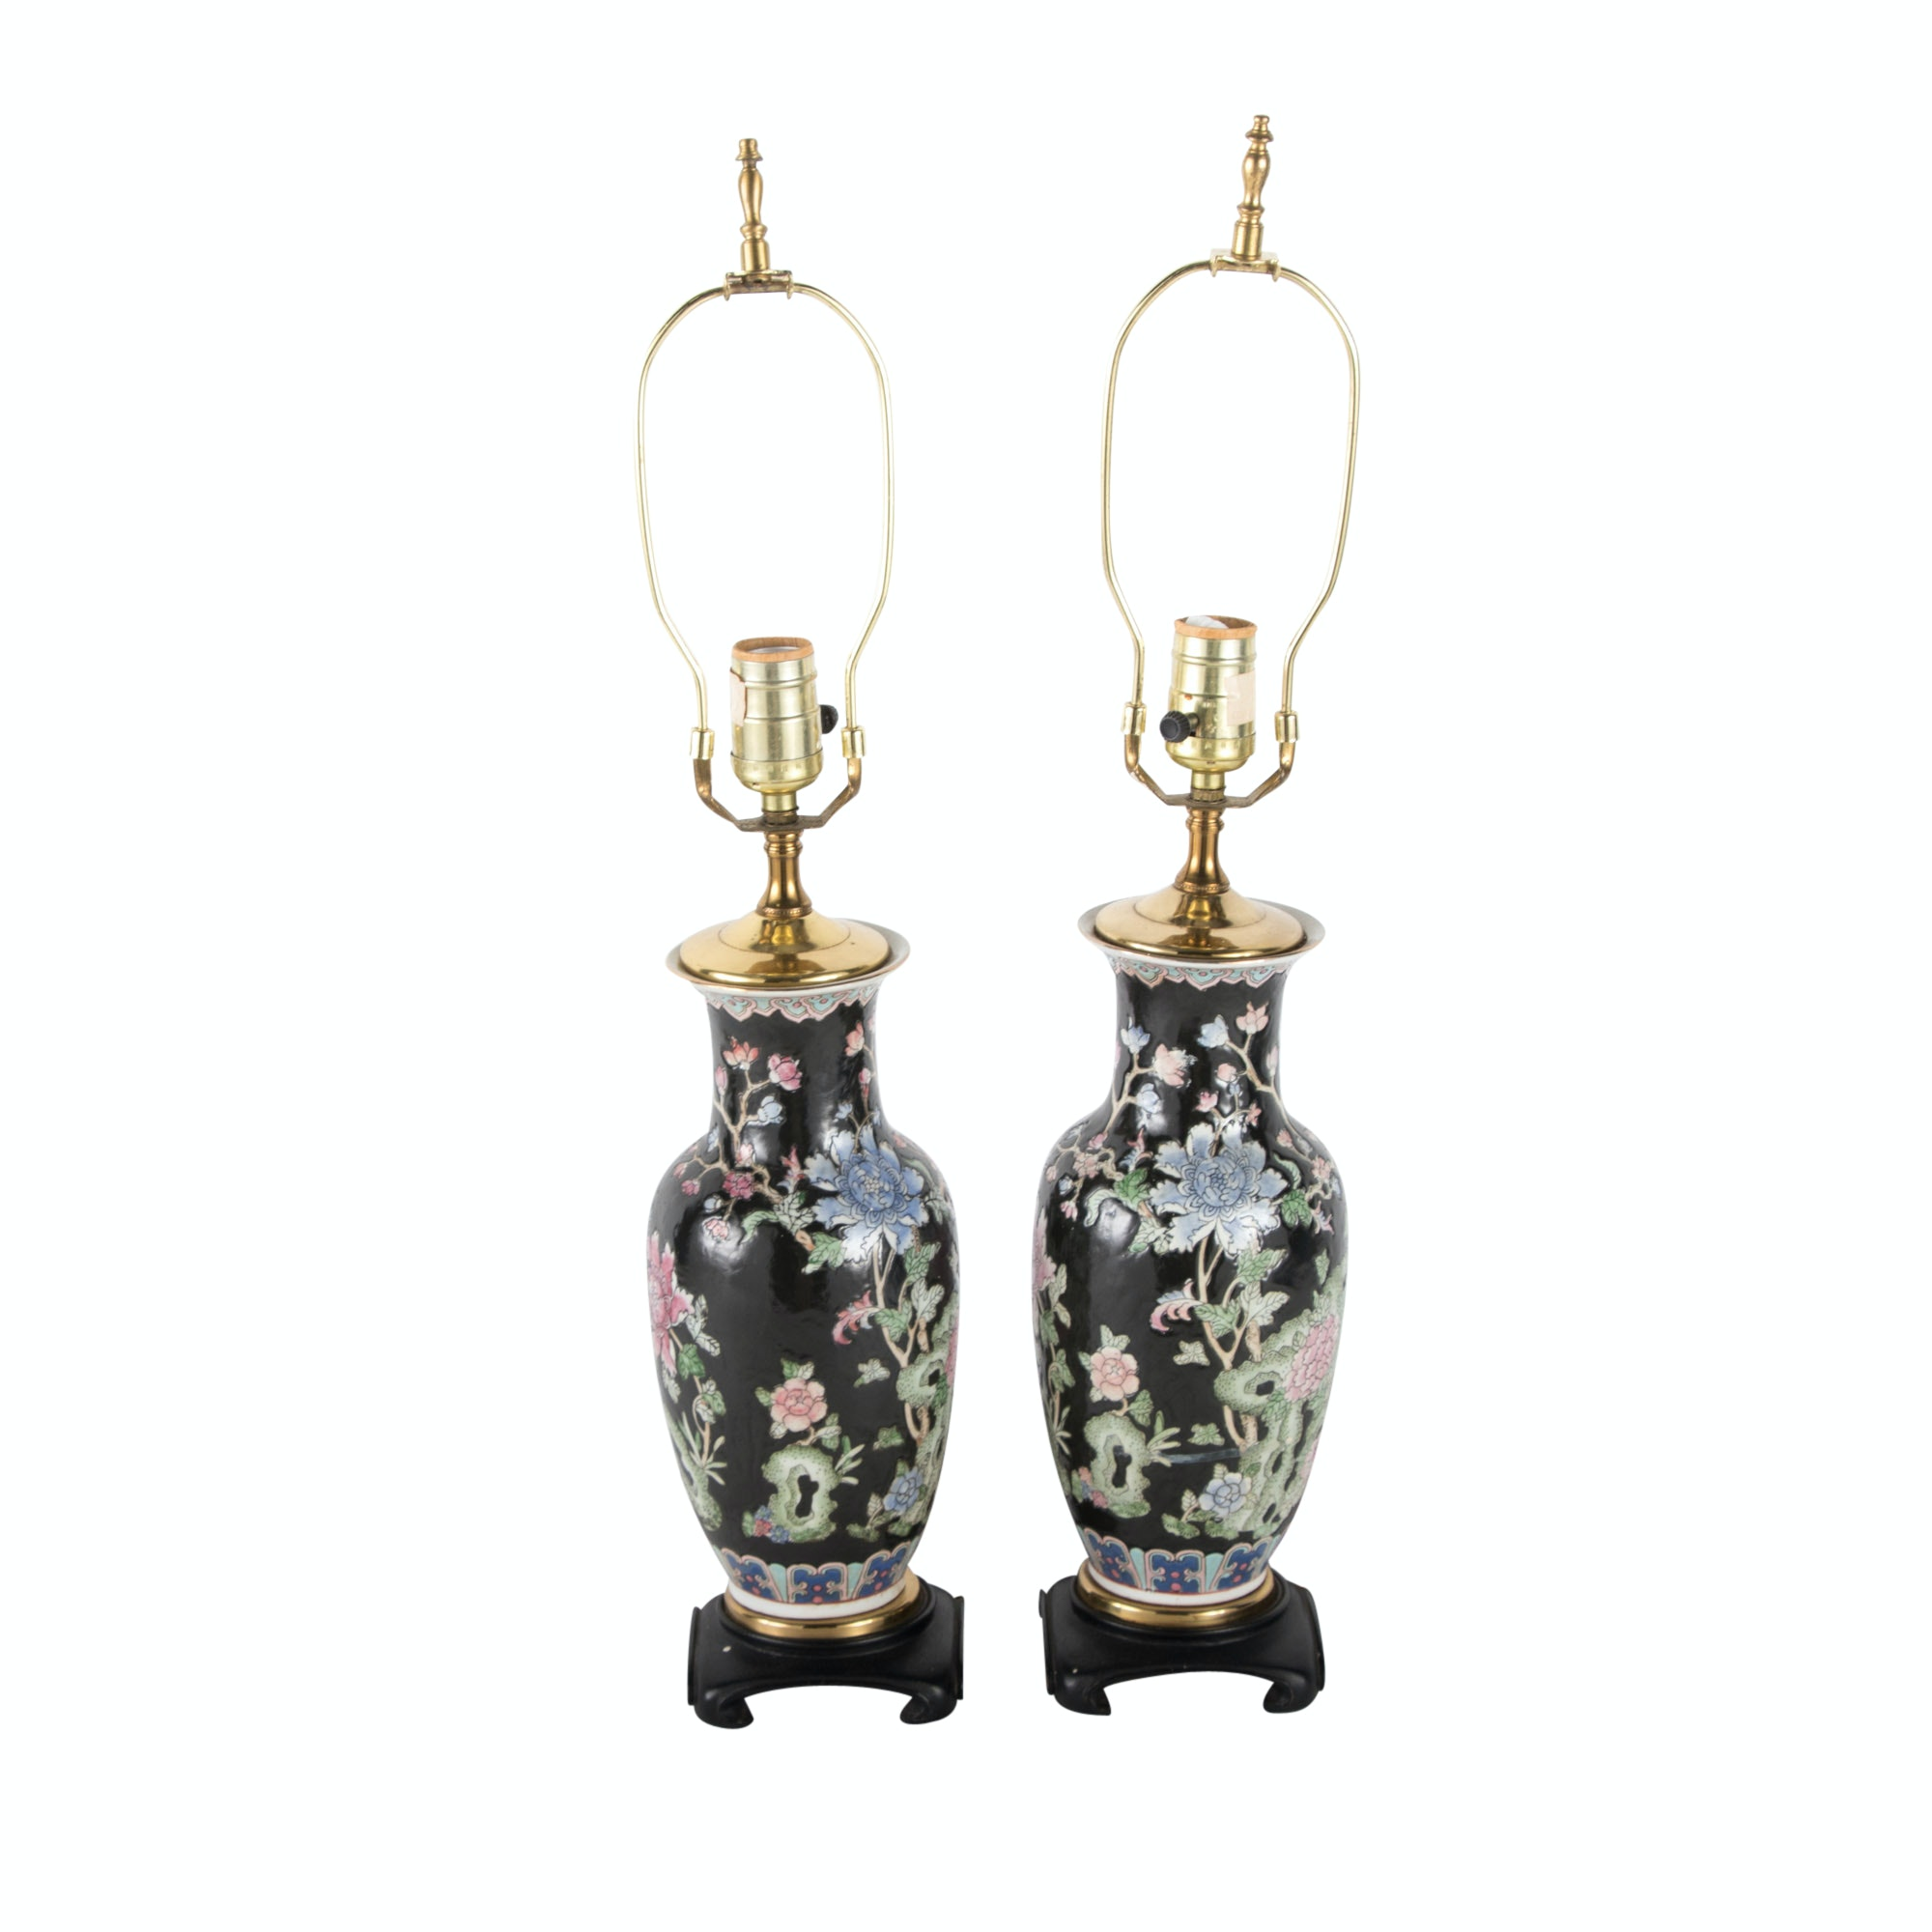 Pair Chinese Famille Noire Porcelain Urn Table Lamps, 20th Century